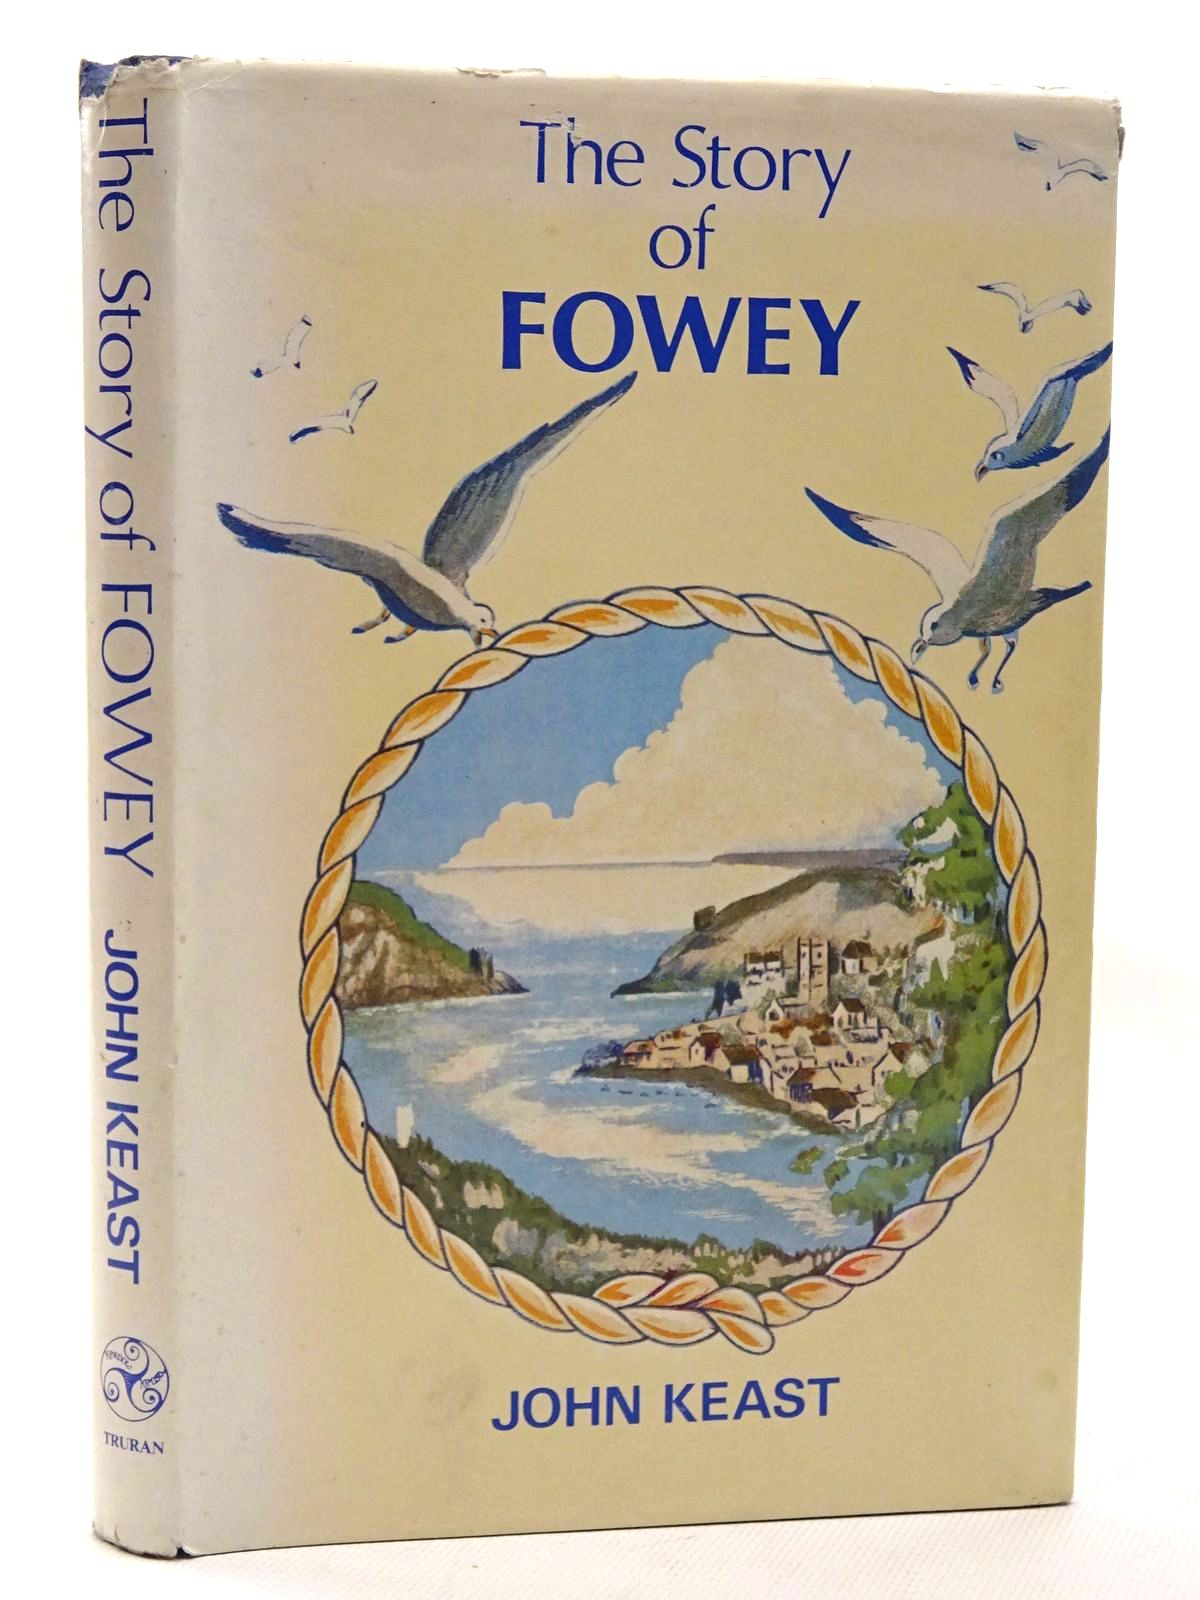 Photo of THE STORY OF FOWEY (CORNWALL) written by Keast, John published by Dyllansow Truran (STOCK CODE: 1815747)  for sale by Stella & Rose's Books